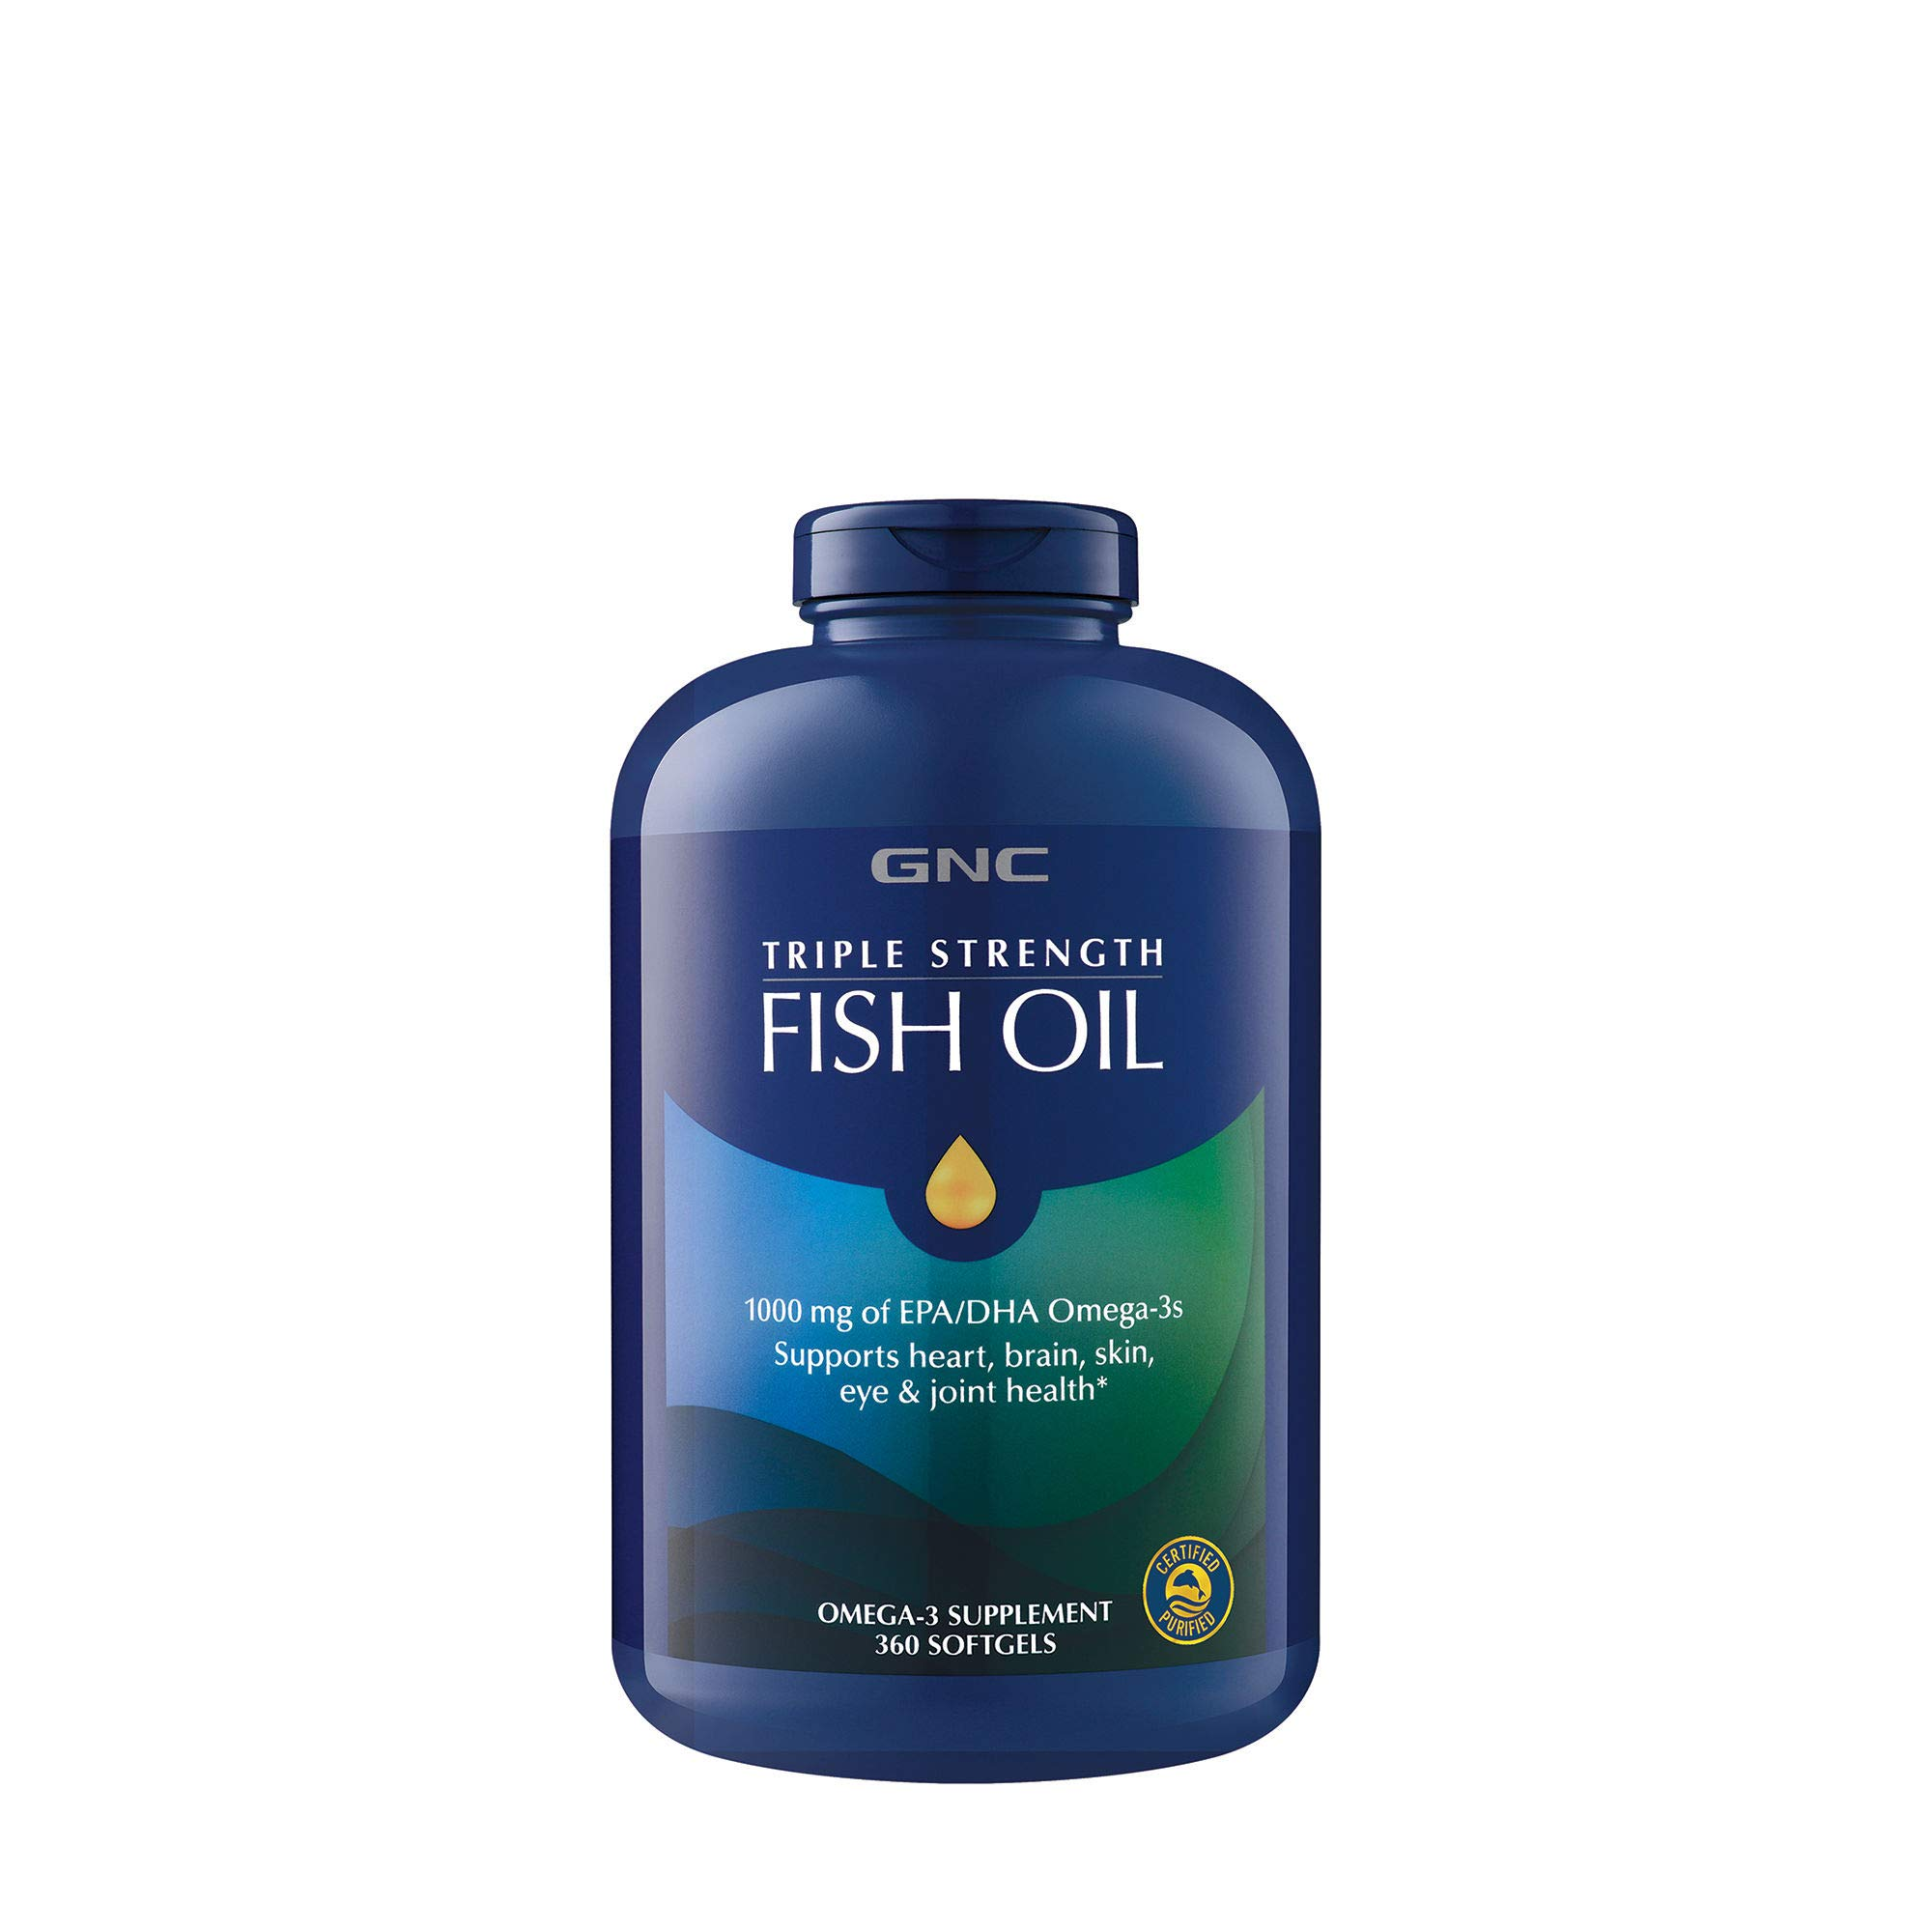 GNC Fish Oil 1000 Milligram of EPA/DHA Omega 3s for Joint, Skin, Eye, and Heart Health - 360 Softgels